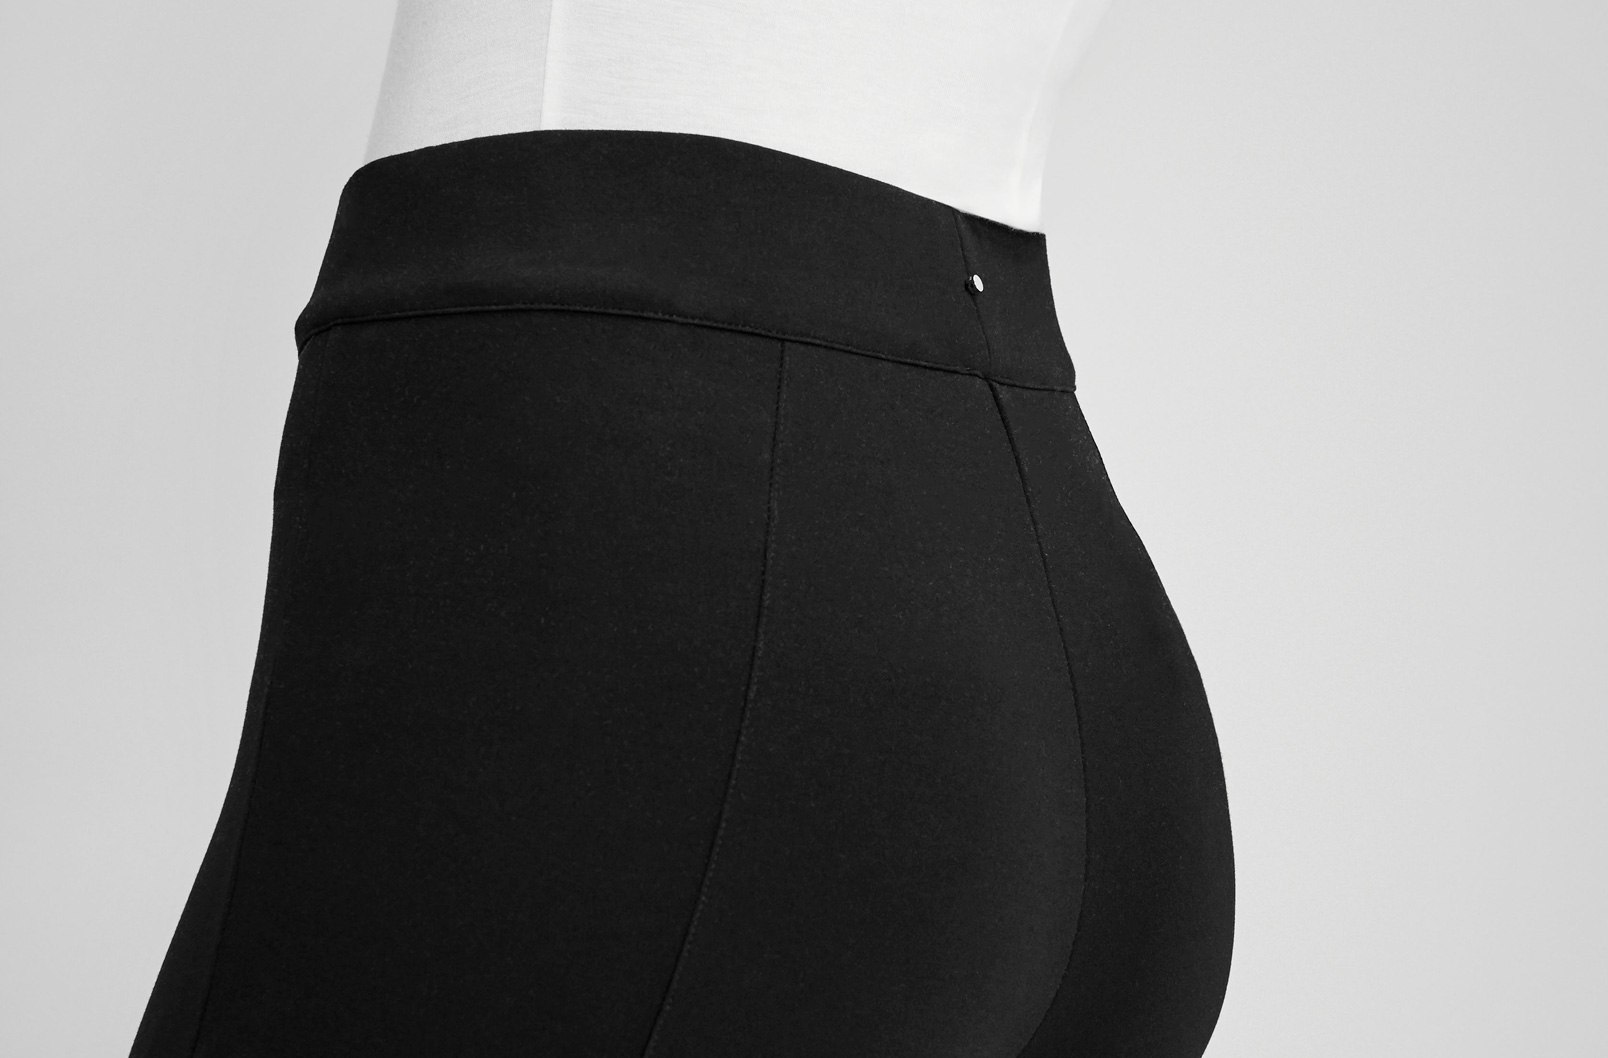 Image showing waistband of Ponte Legging Pant on model